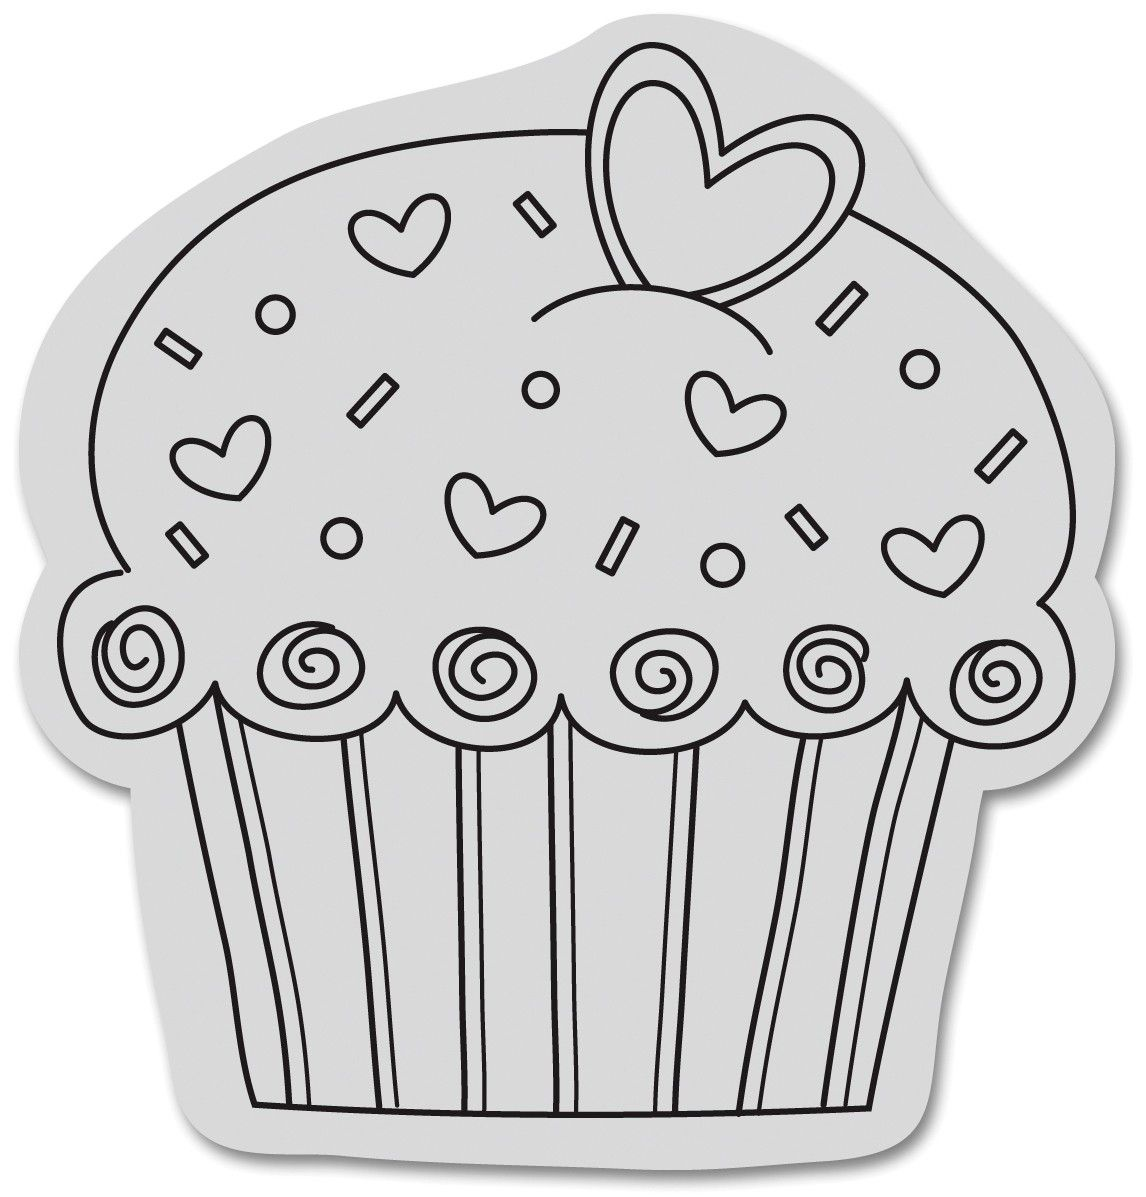 Cupcake Black And White Clipart Google Search Cupcakes And